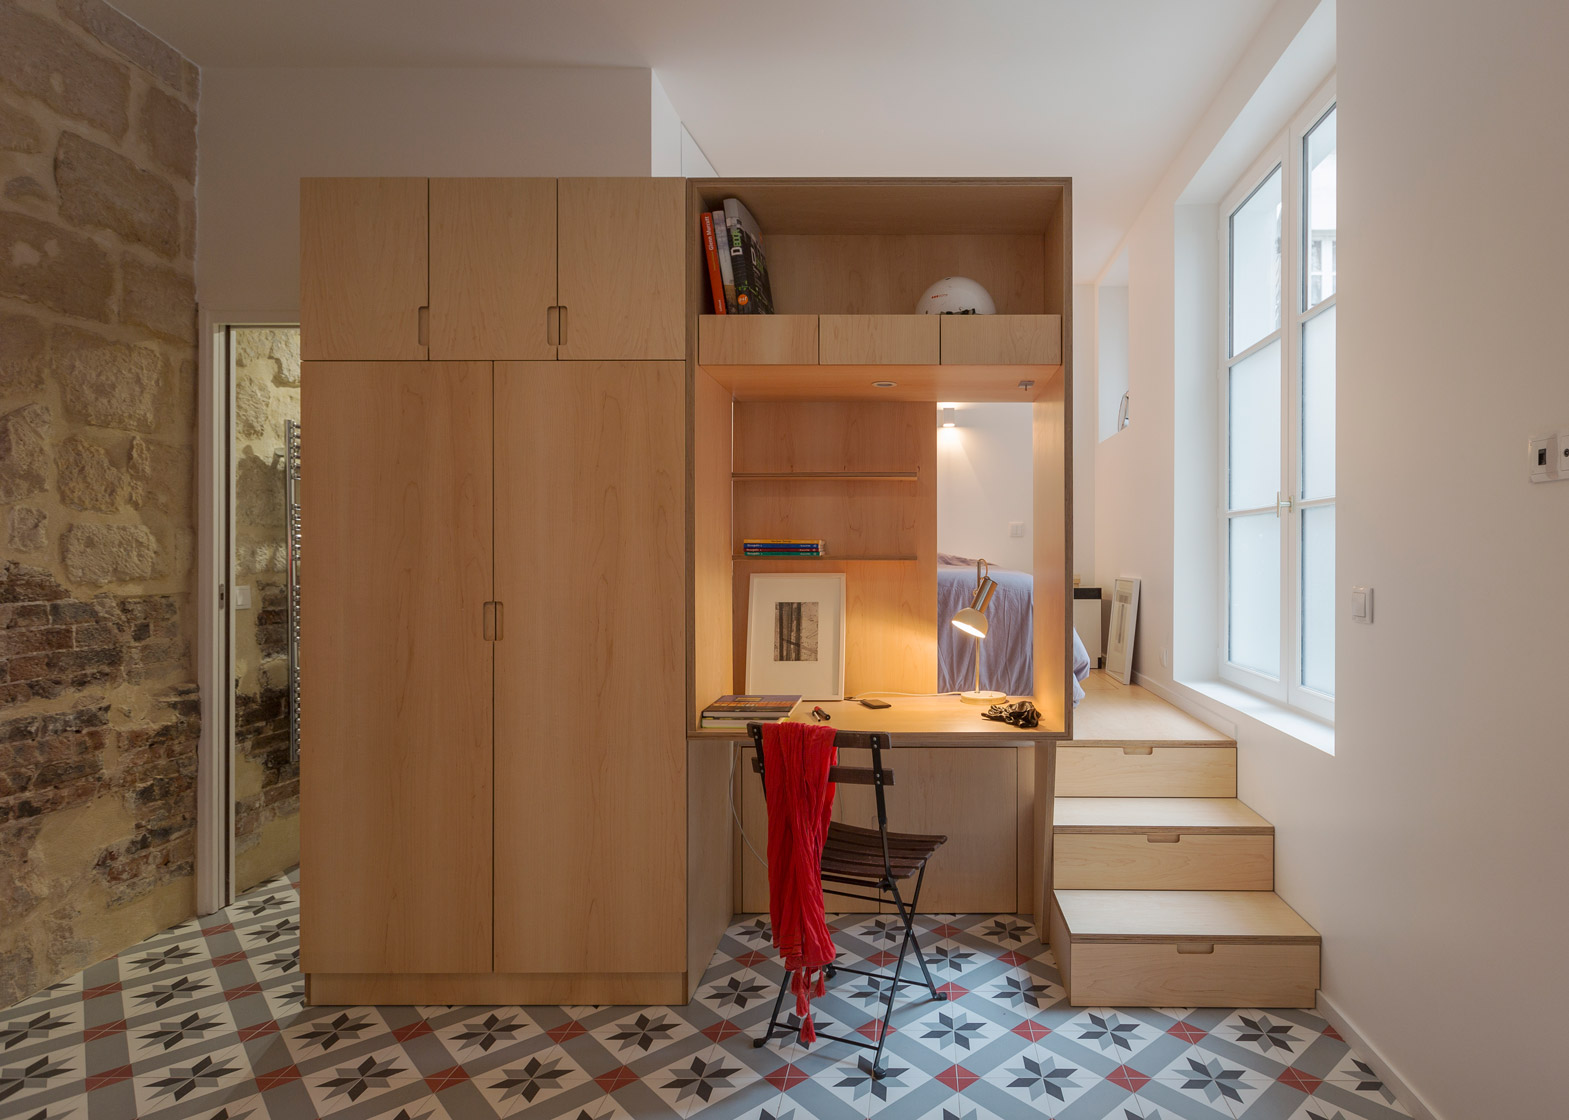 Dashing Studio Apartment Paris By Anne Rolland Architecte Has A Hidden Convertedslurry Pit Studio Apartment By Anne Rolland Has A Hidden Room Decorating One Room Studio Apartments One Room Studio Apar apartment One Room Studio Apartment